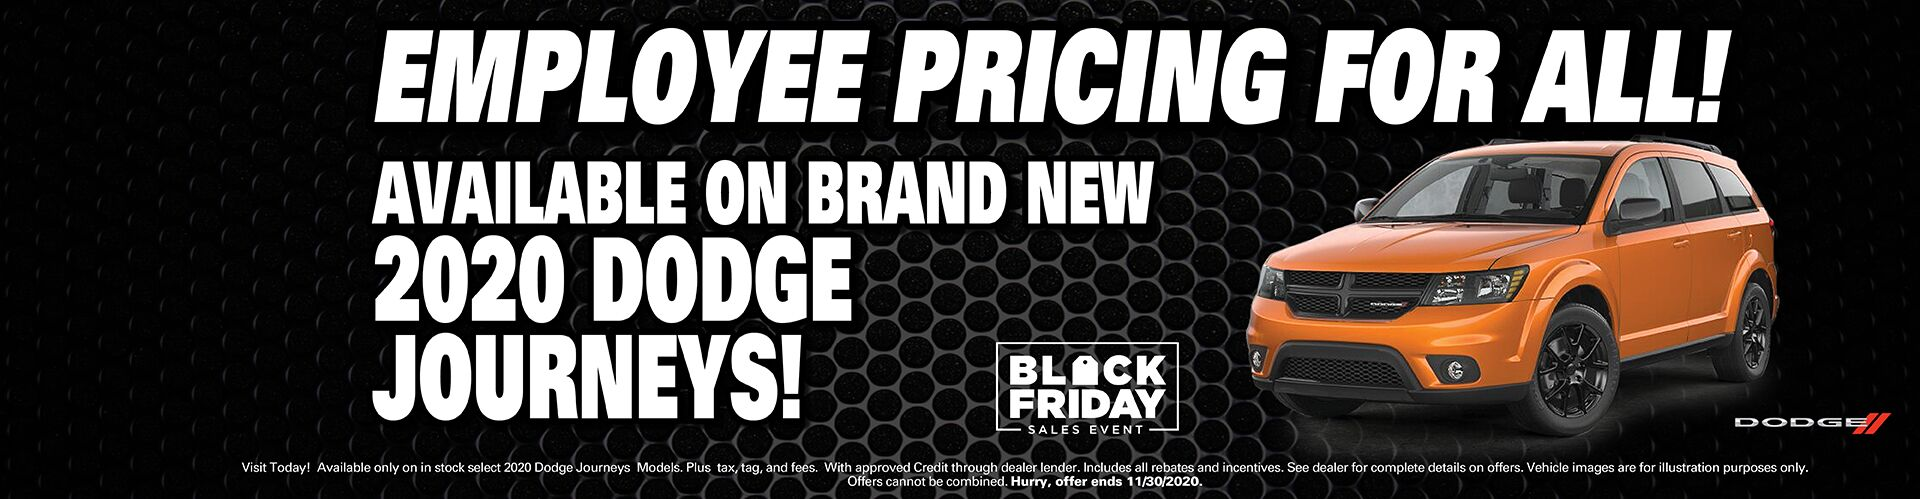 Employee Pricing On New Dodge Journeys!